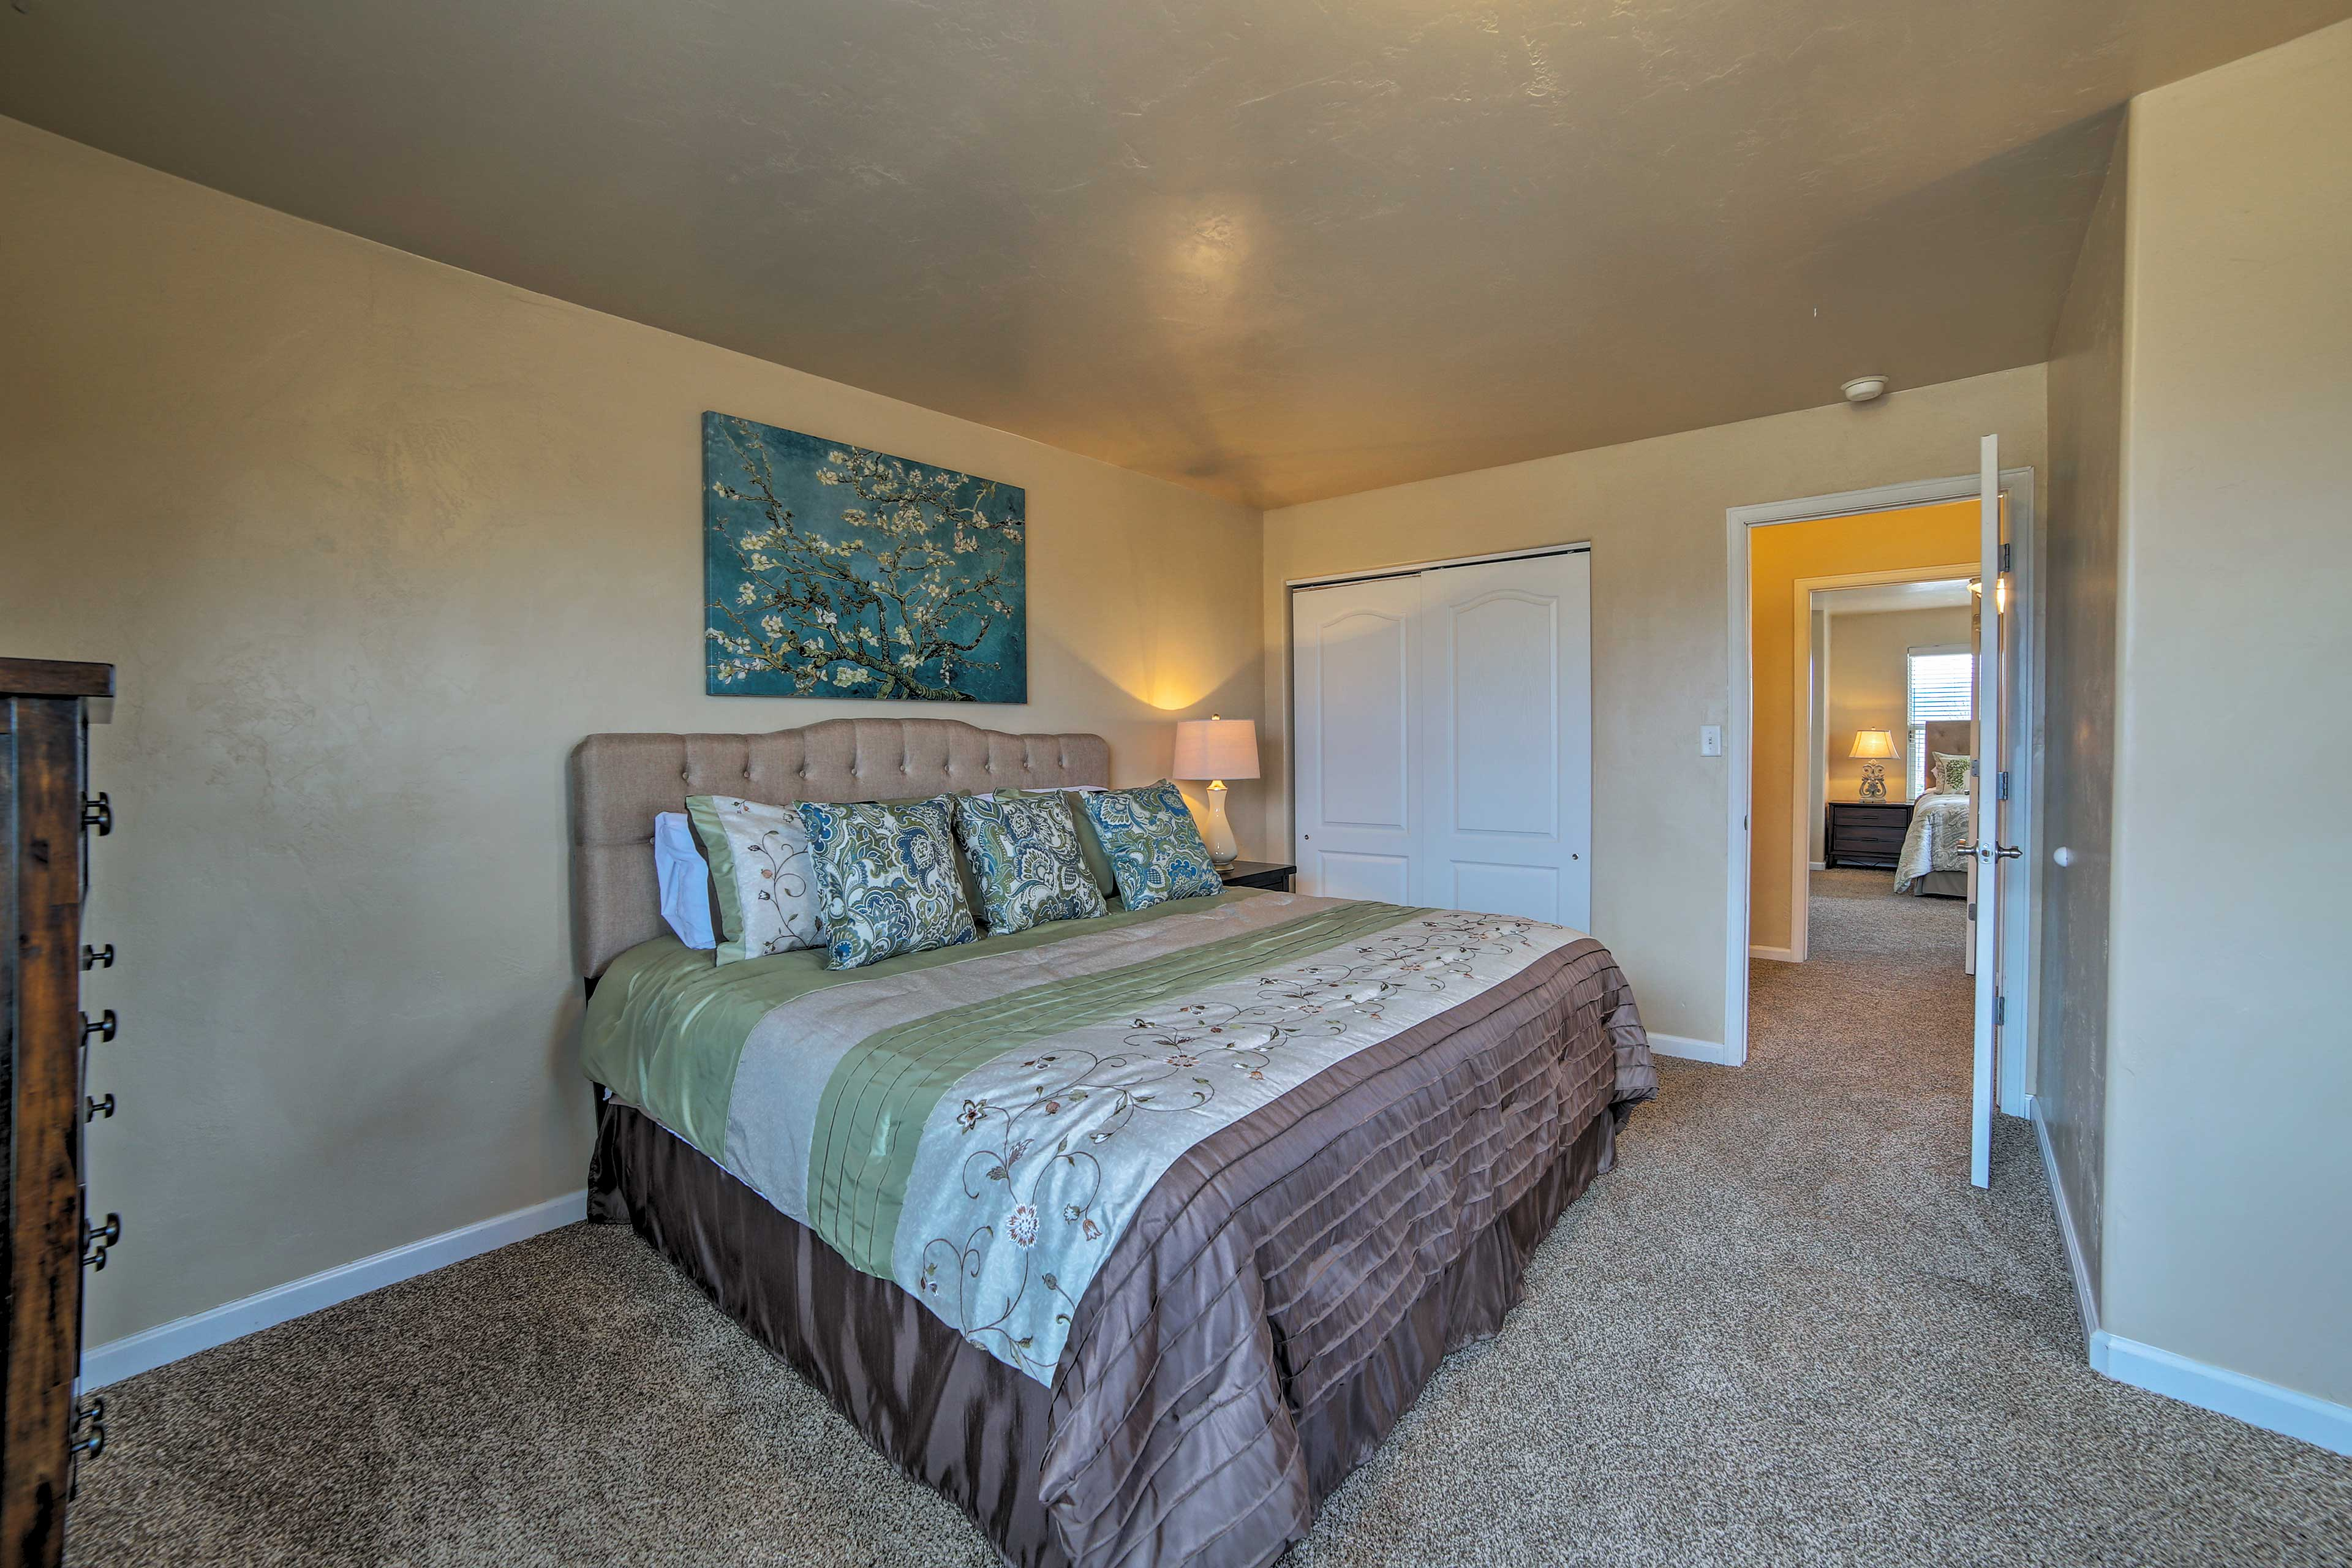 Take an afternoon nap in the king bed of bedroom 3.